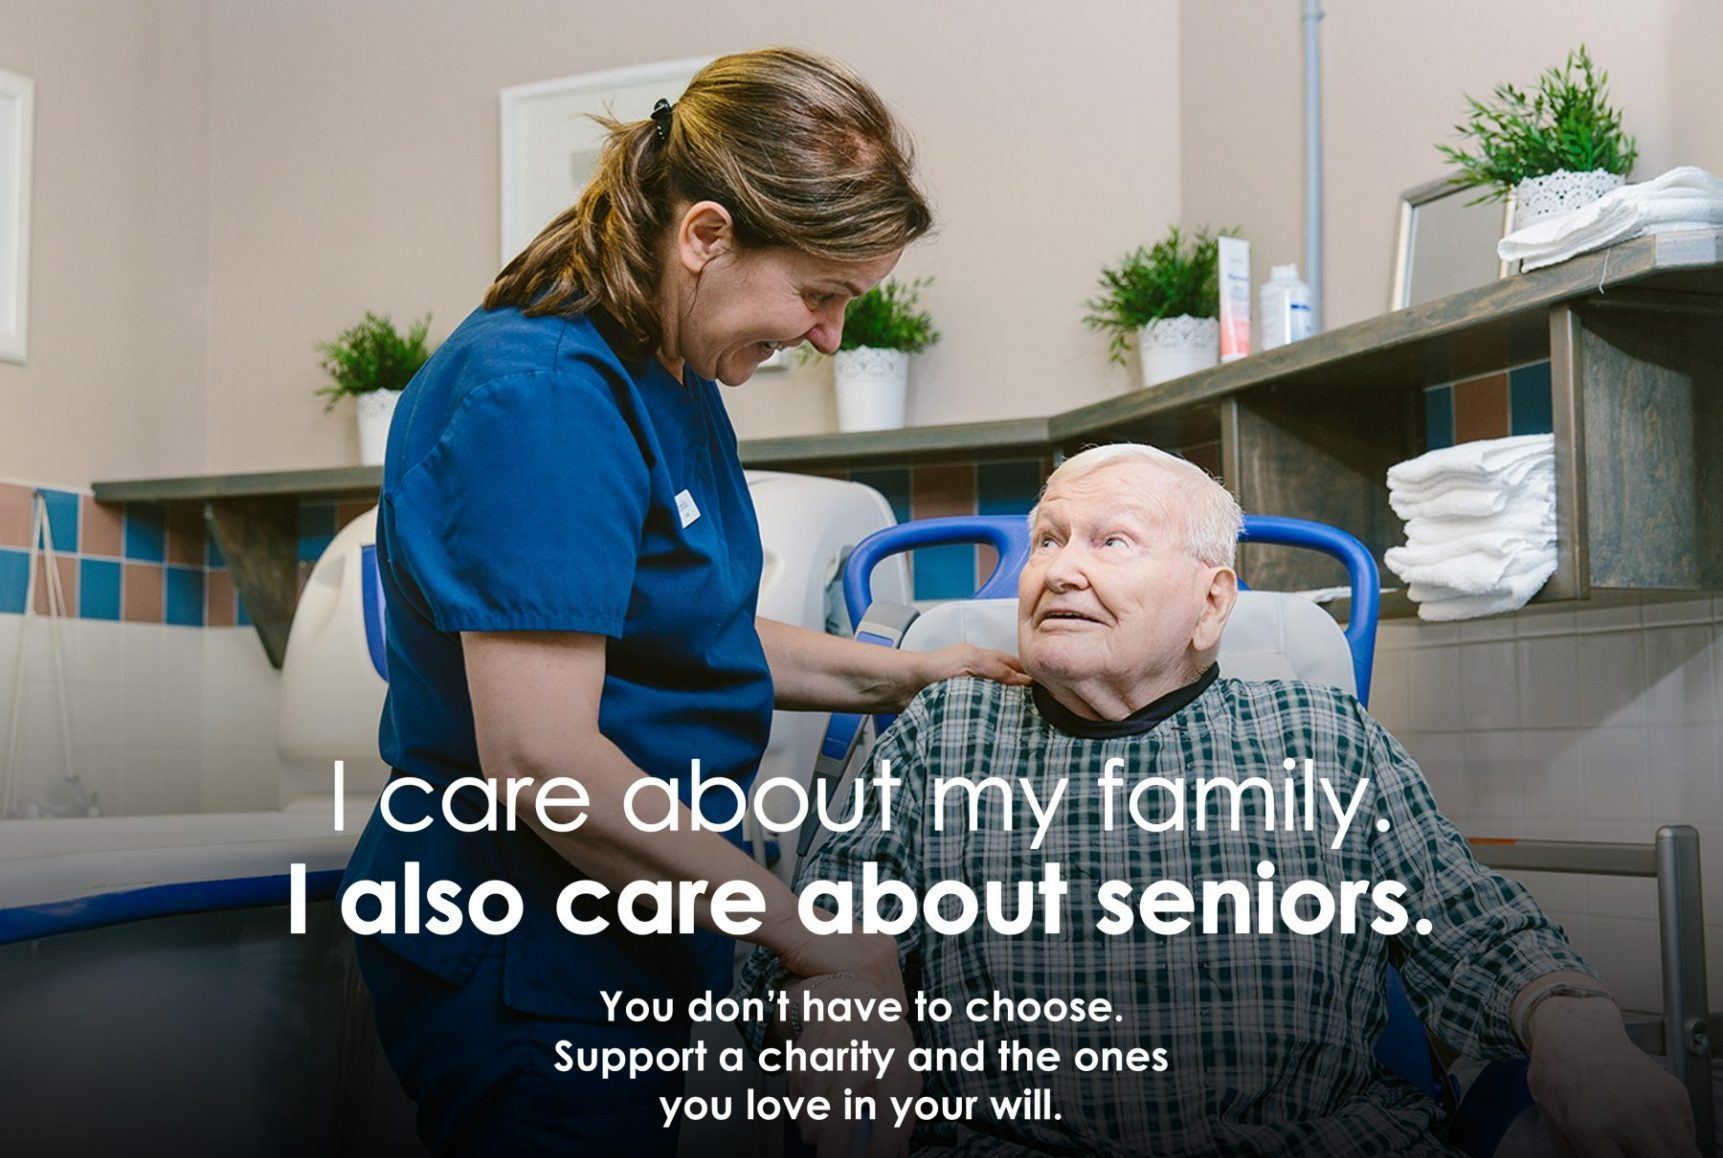 Health care worker assisting a senior